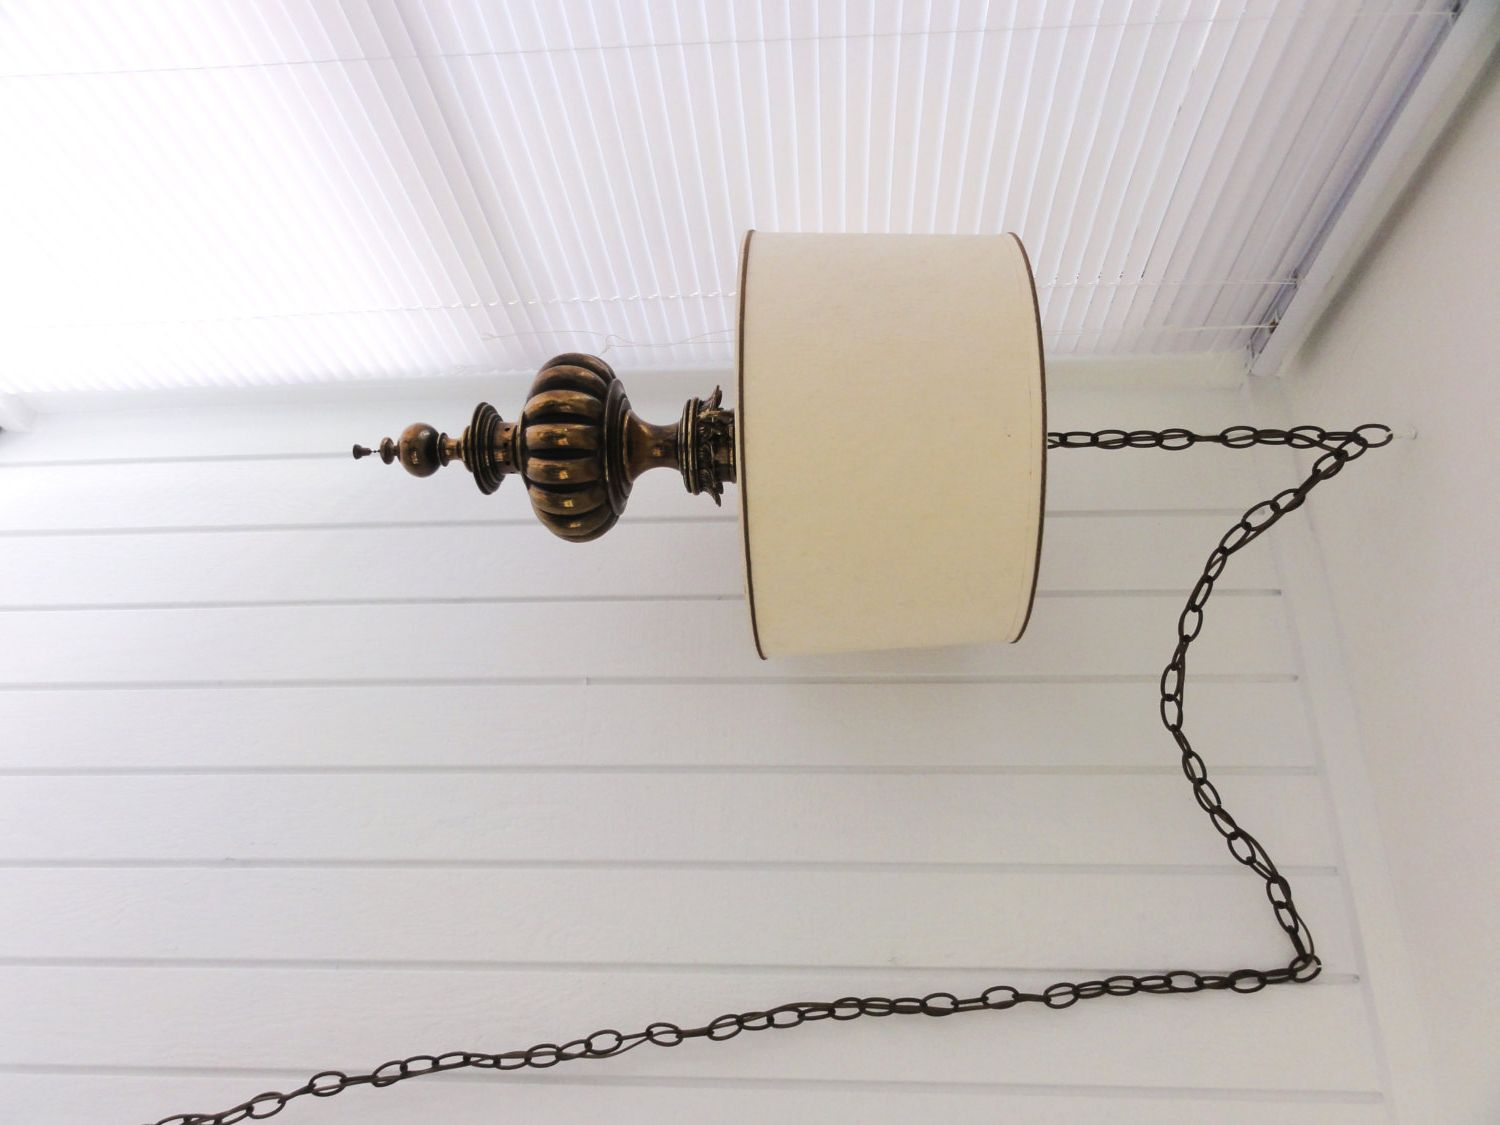 Nyp Sale Vintage Stiffel Swag Hanging Lamp W Original Shade Large And Heavy Antique Brass Pull Chain Two Bulb Retro Hangi Hanging Lamp Swag Light Stiffel